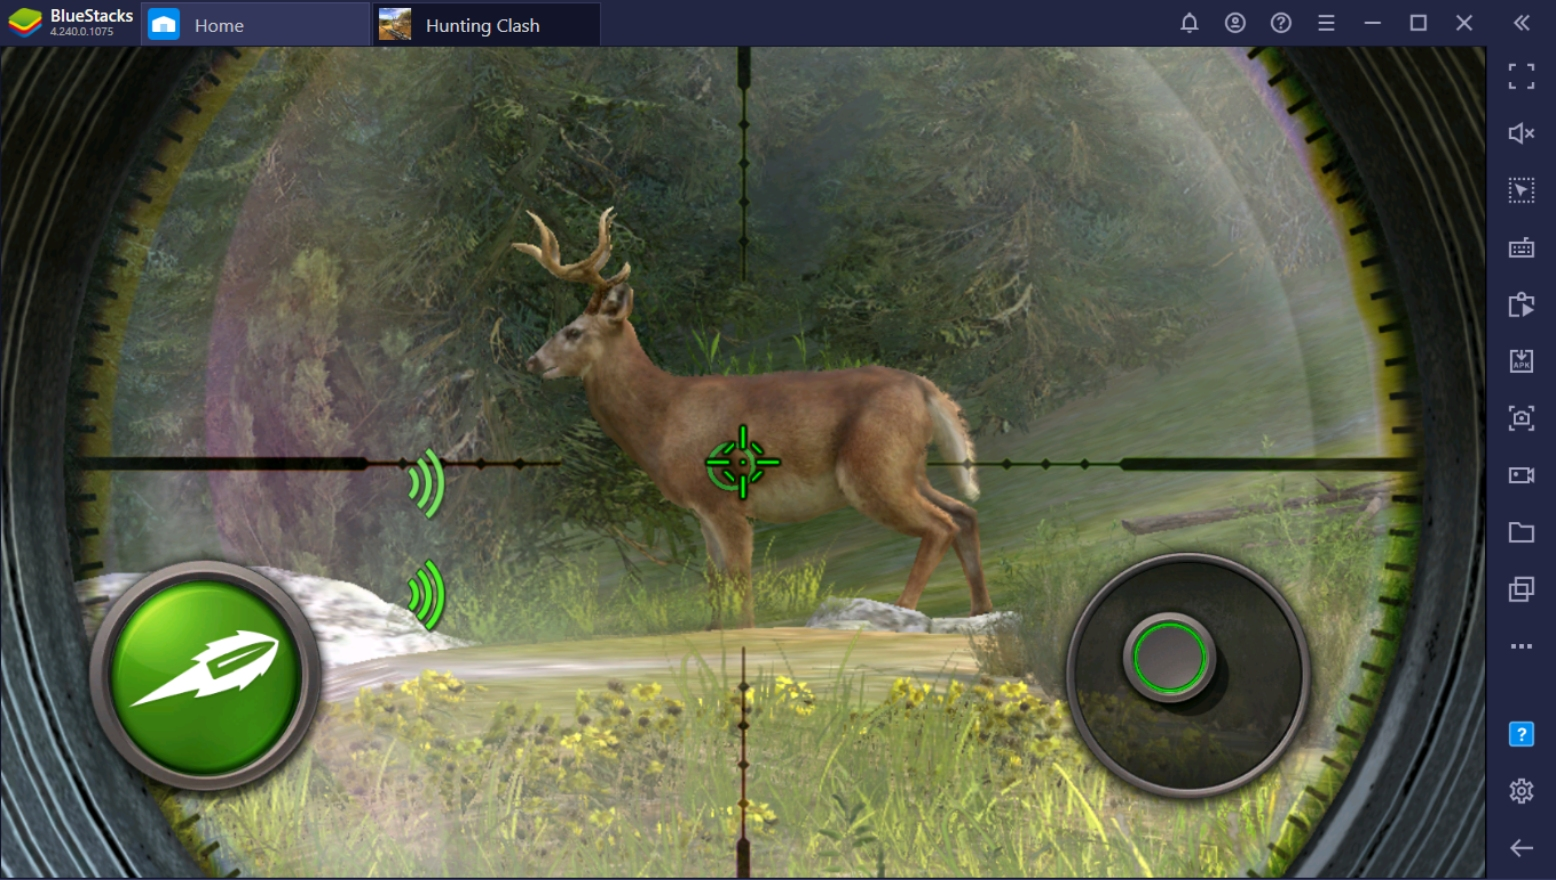 A Beginner's Guide To Playing Hunting Clash